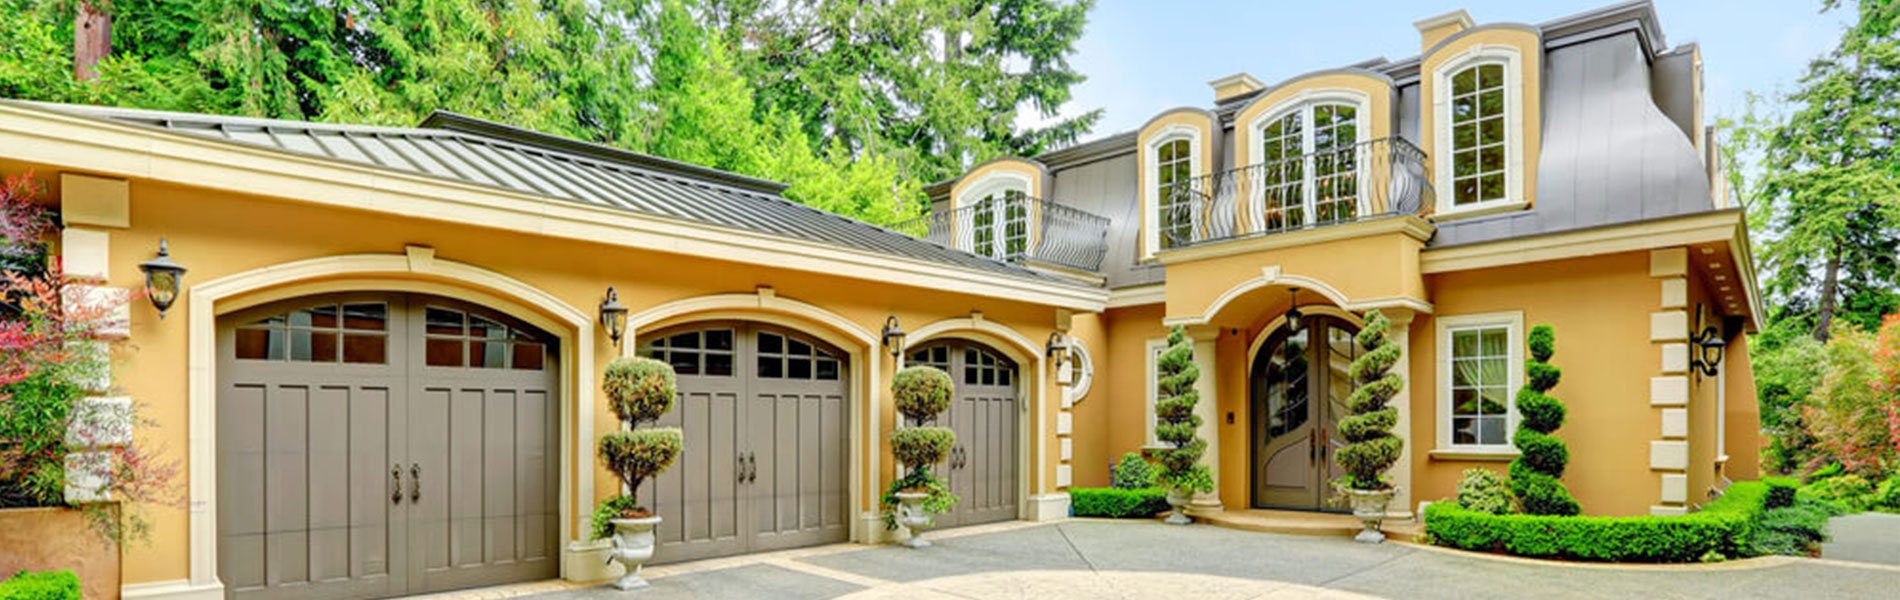 Interstate Garage Door Repair Service, Green Harbor, MA 781-236-3121